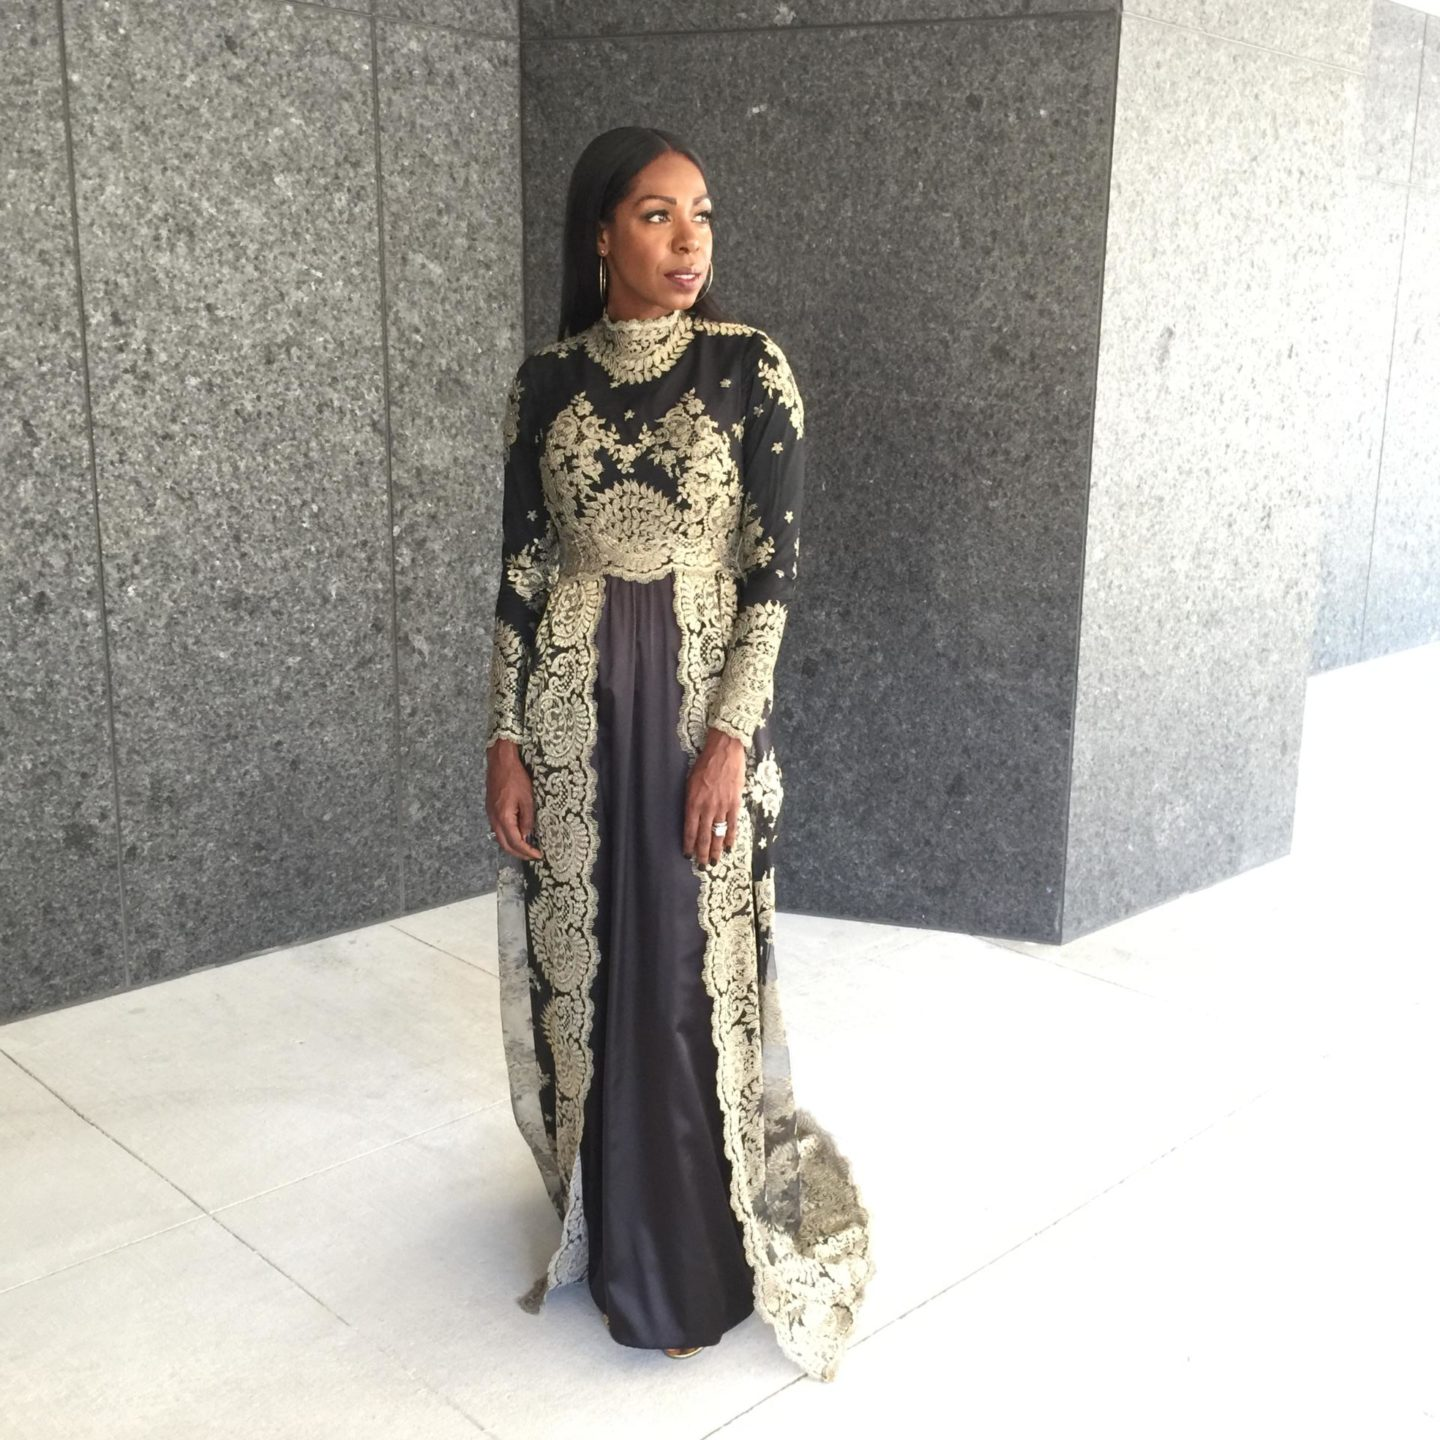 The 2018 Governor General's Performing Arts Awards